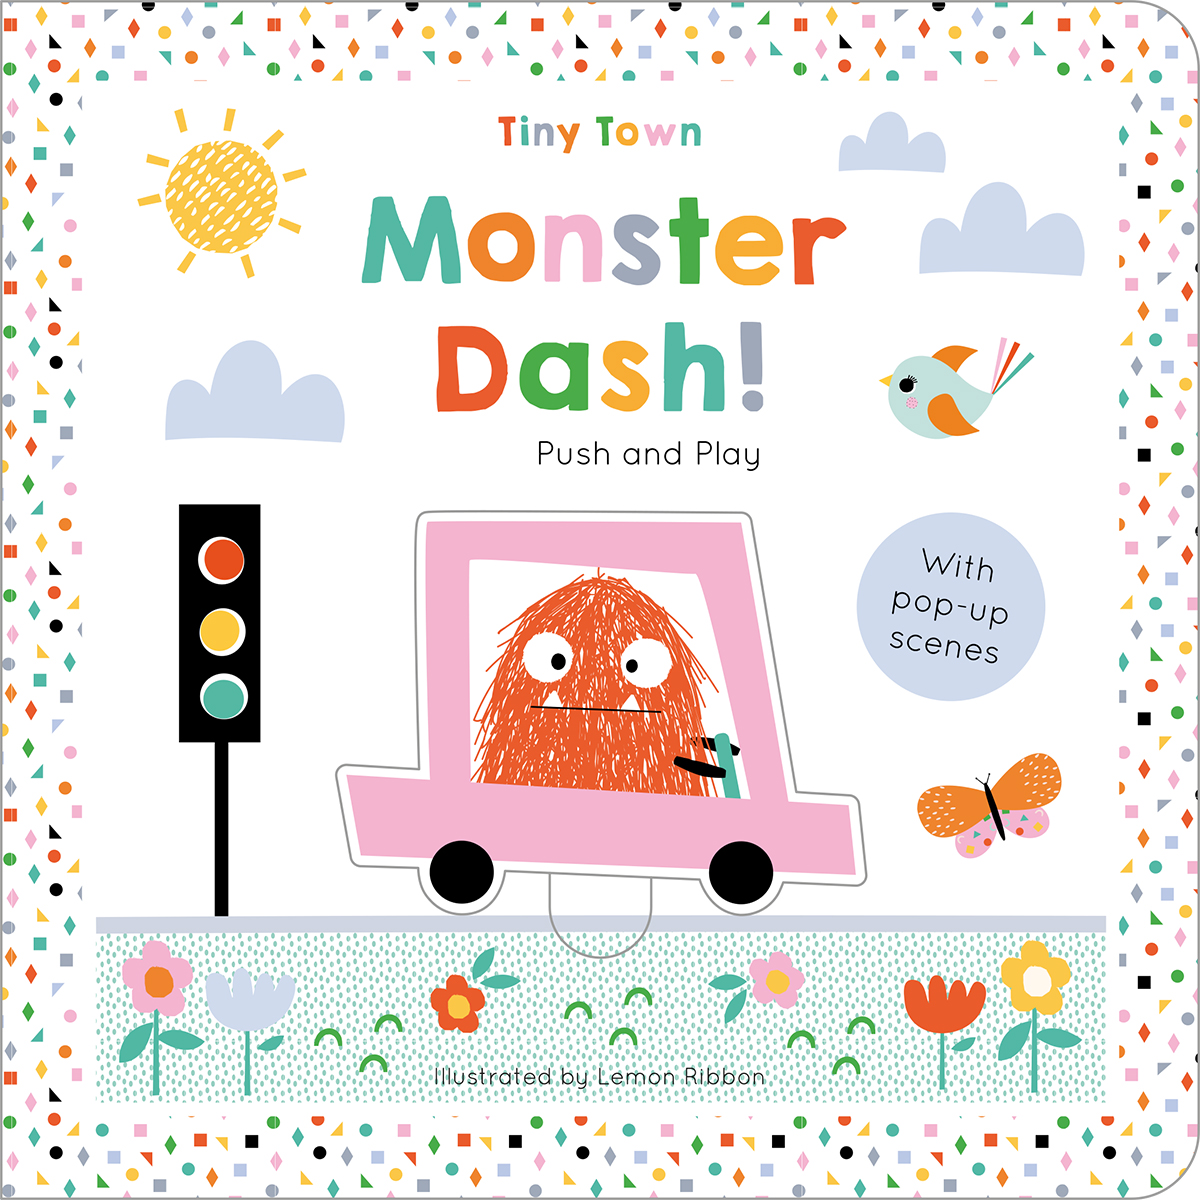 MONSTER DASH!